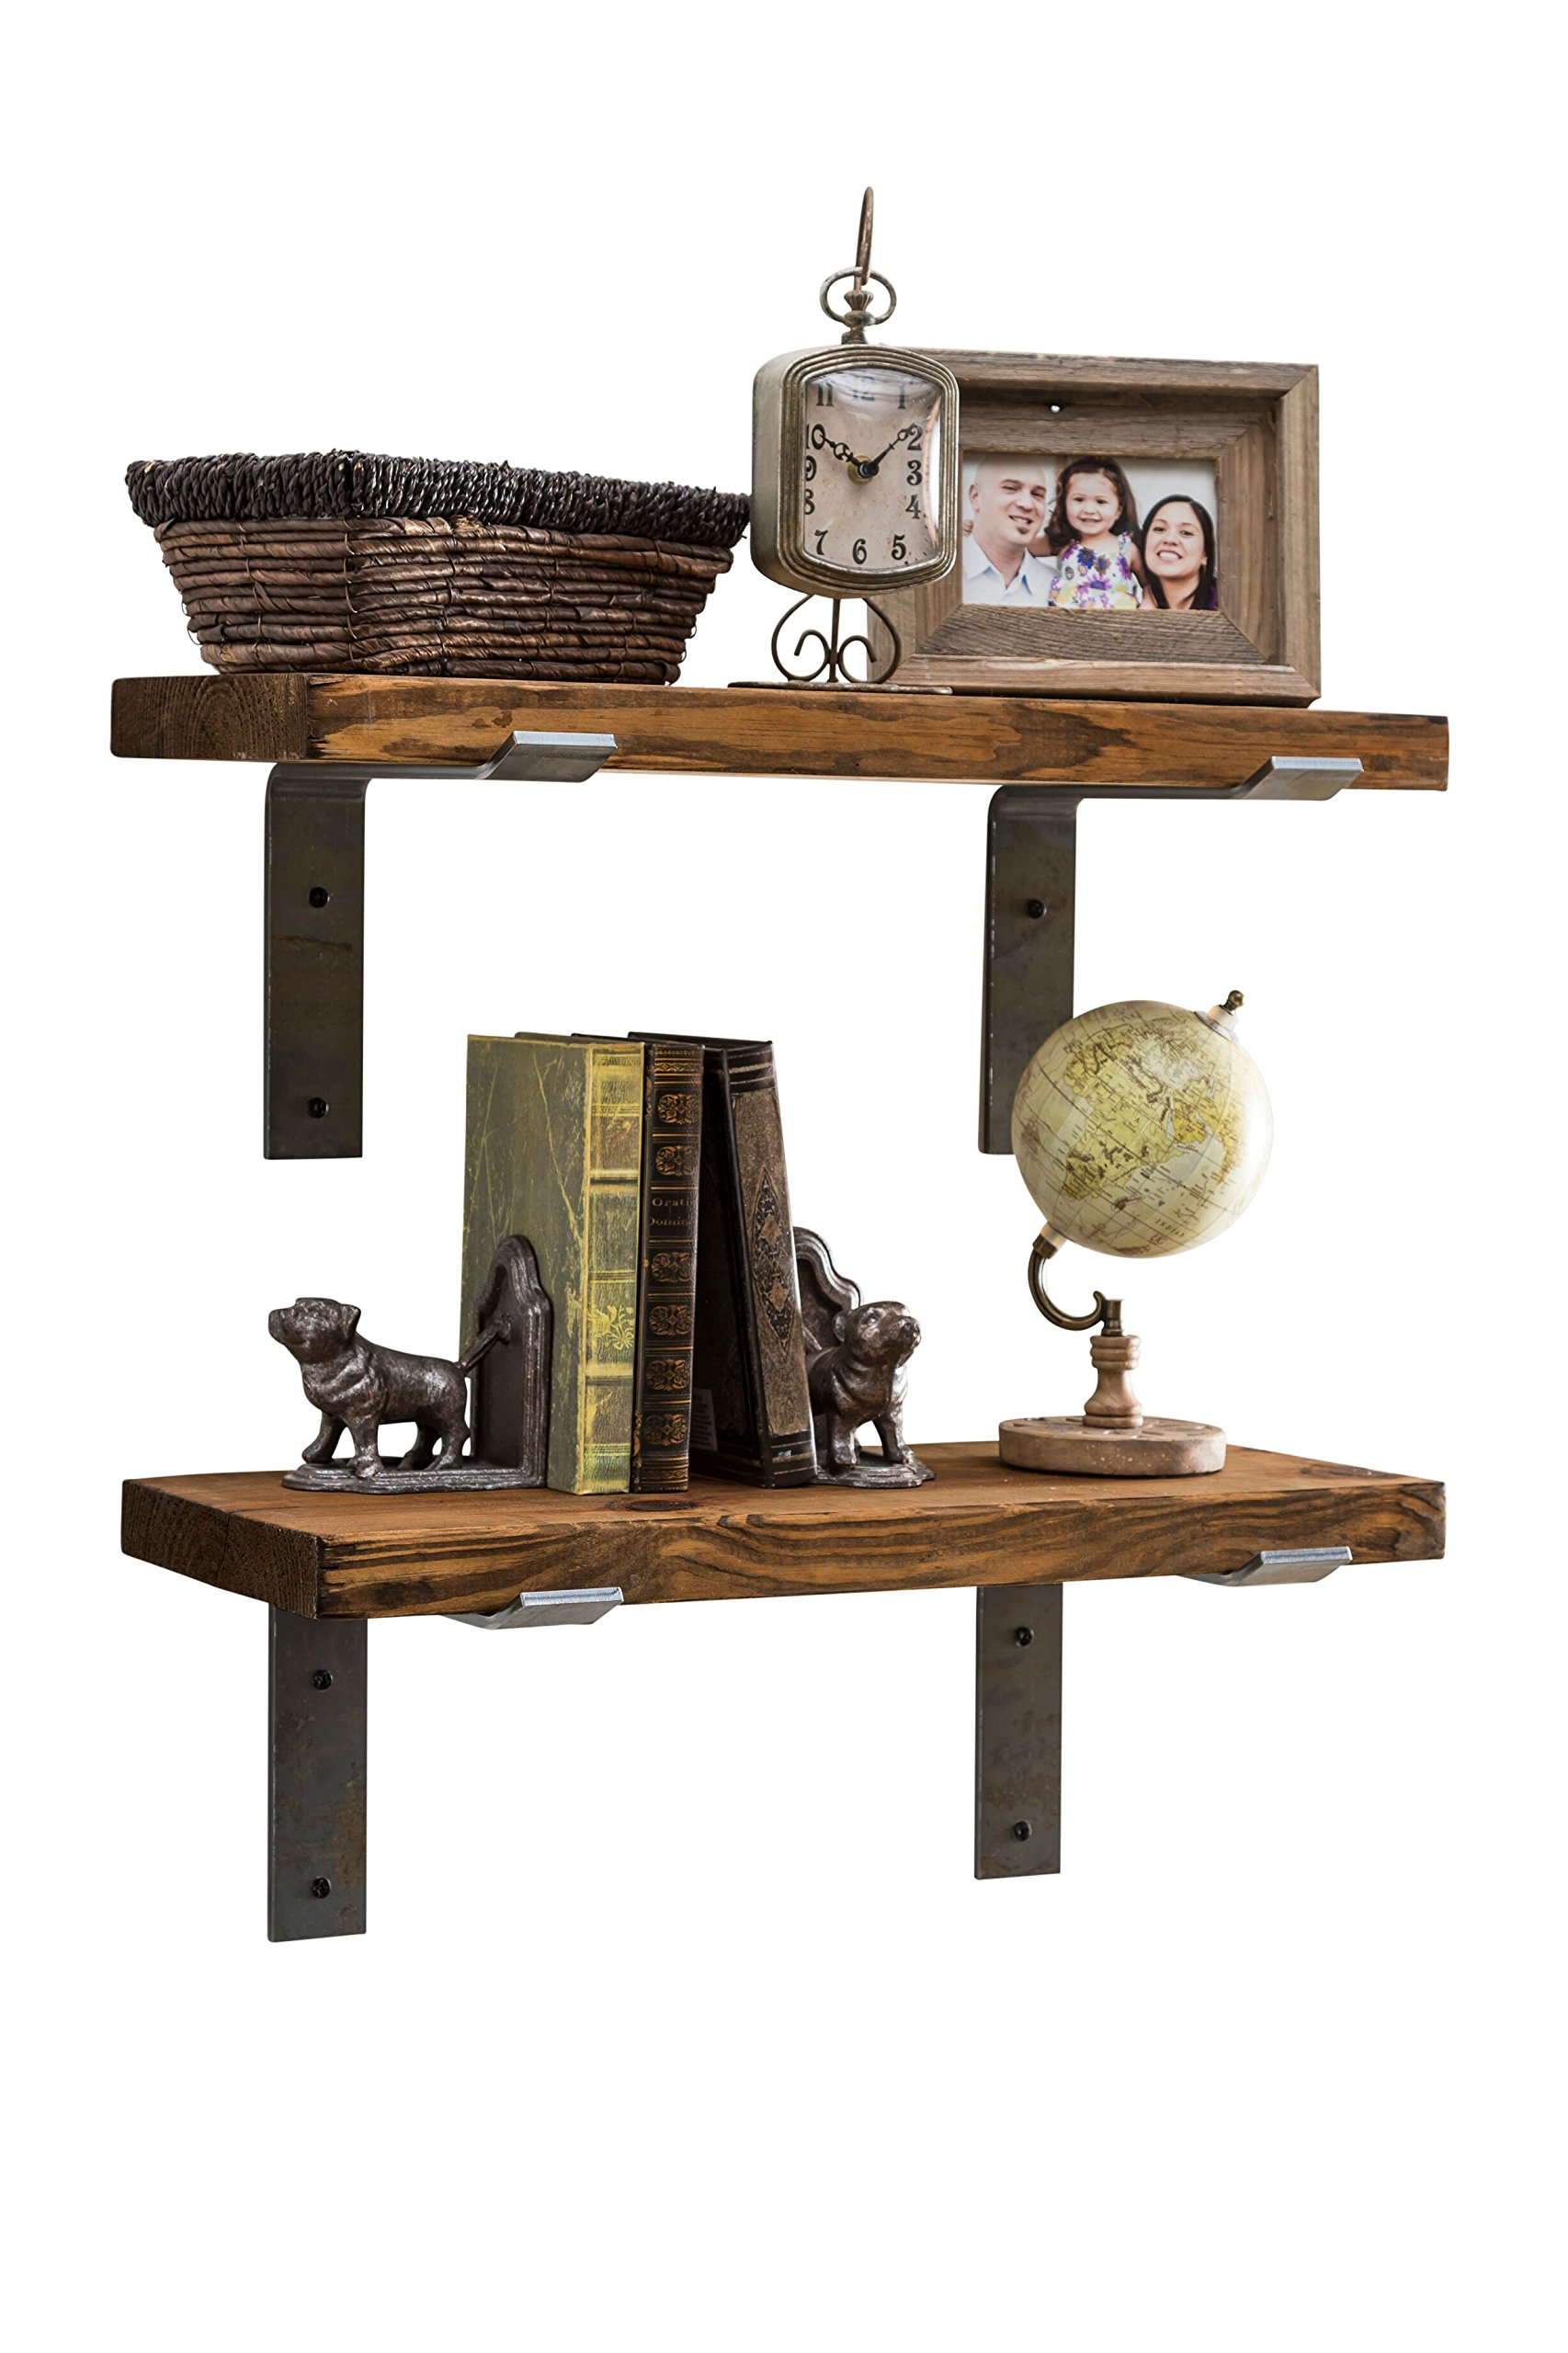 Industrial Shelves w/ Metal Brackets (Set of 2) - del Hutson Designs, USA Handmade, Pine Wood (24 Inch / 2 Ft, Dark Walnut)